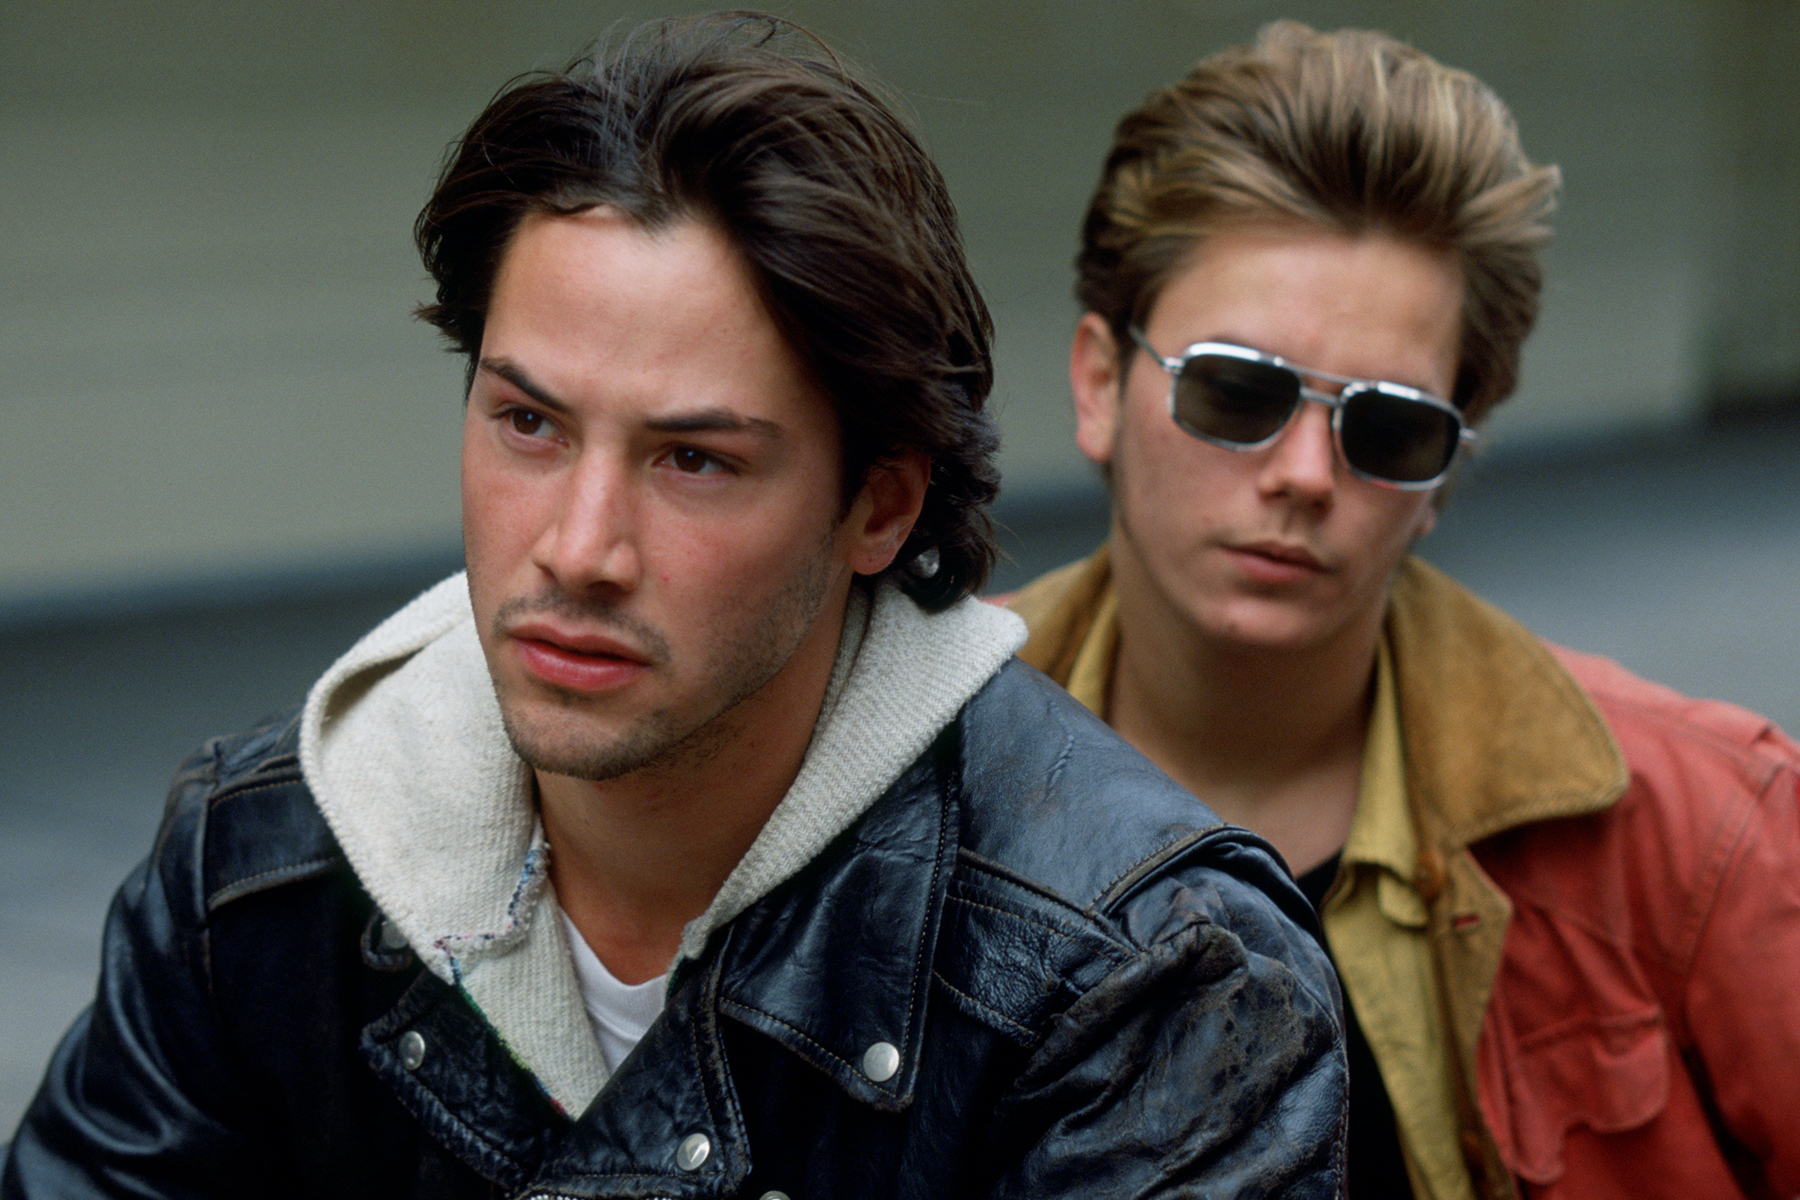 """(Left) Keanu Reeves as """"Scott"""", (Right) River Phoenix as """"Mike"""" in 'My Own Private Idaho' (1991)."""